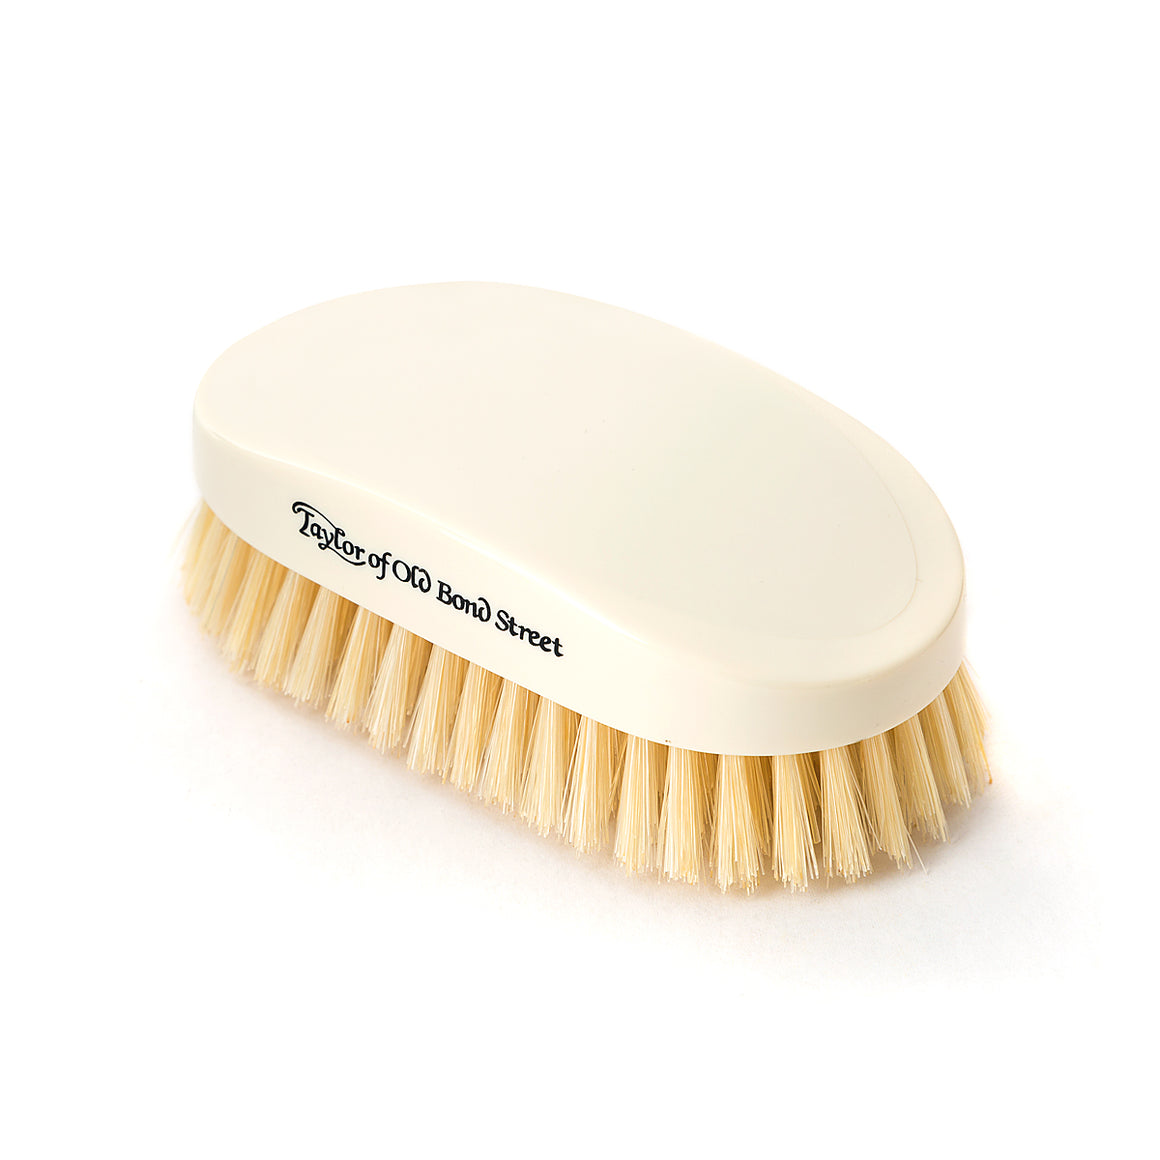 Taylor of Old Bond Street Imitation Ivory Military Hairbrush